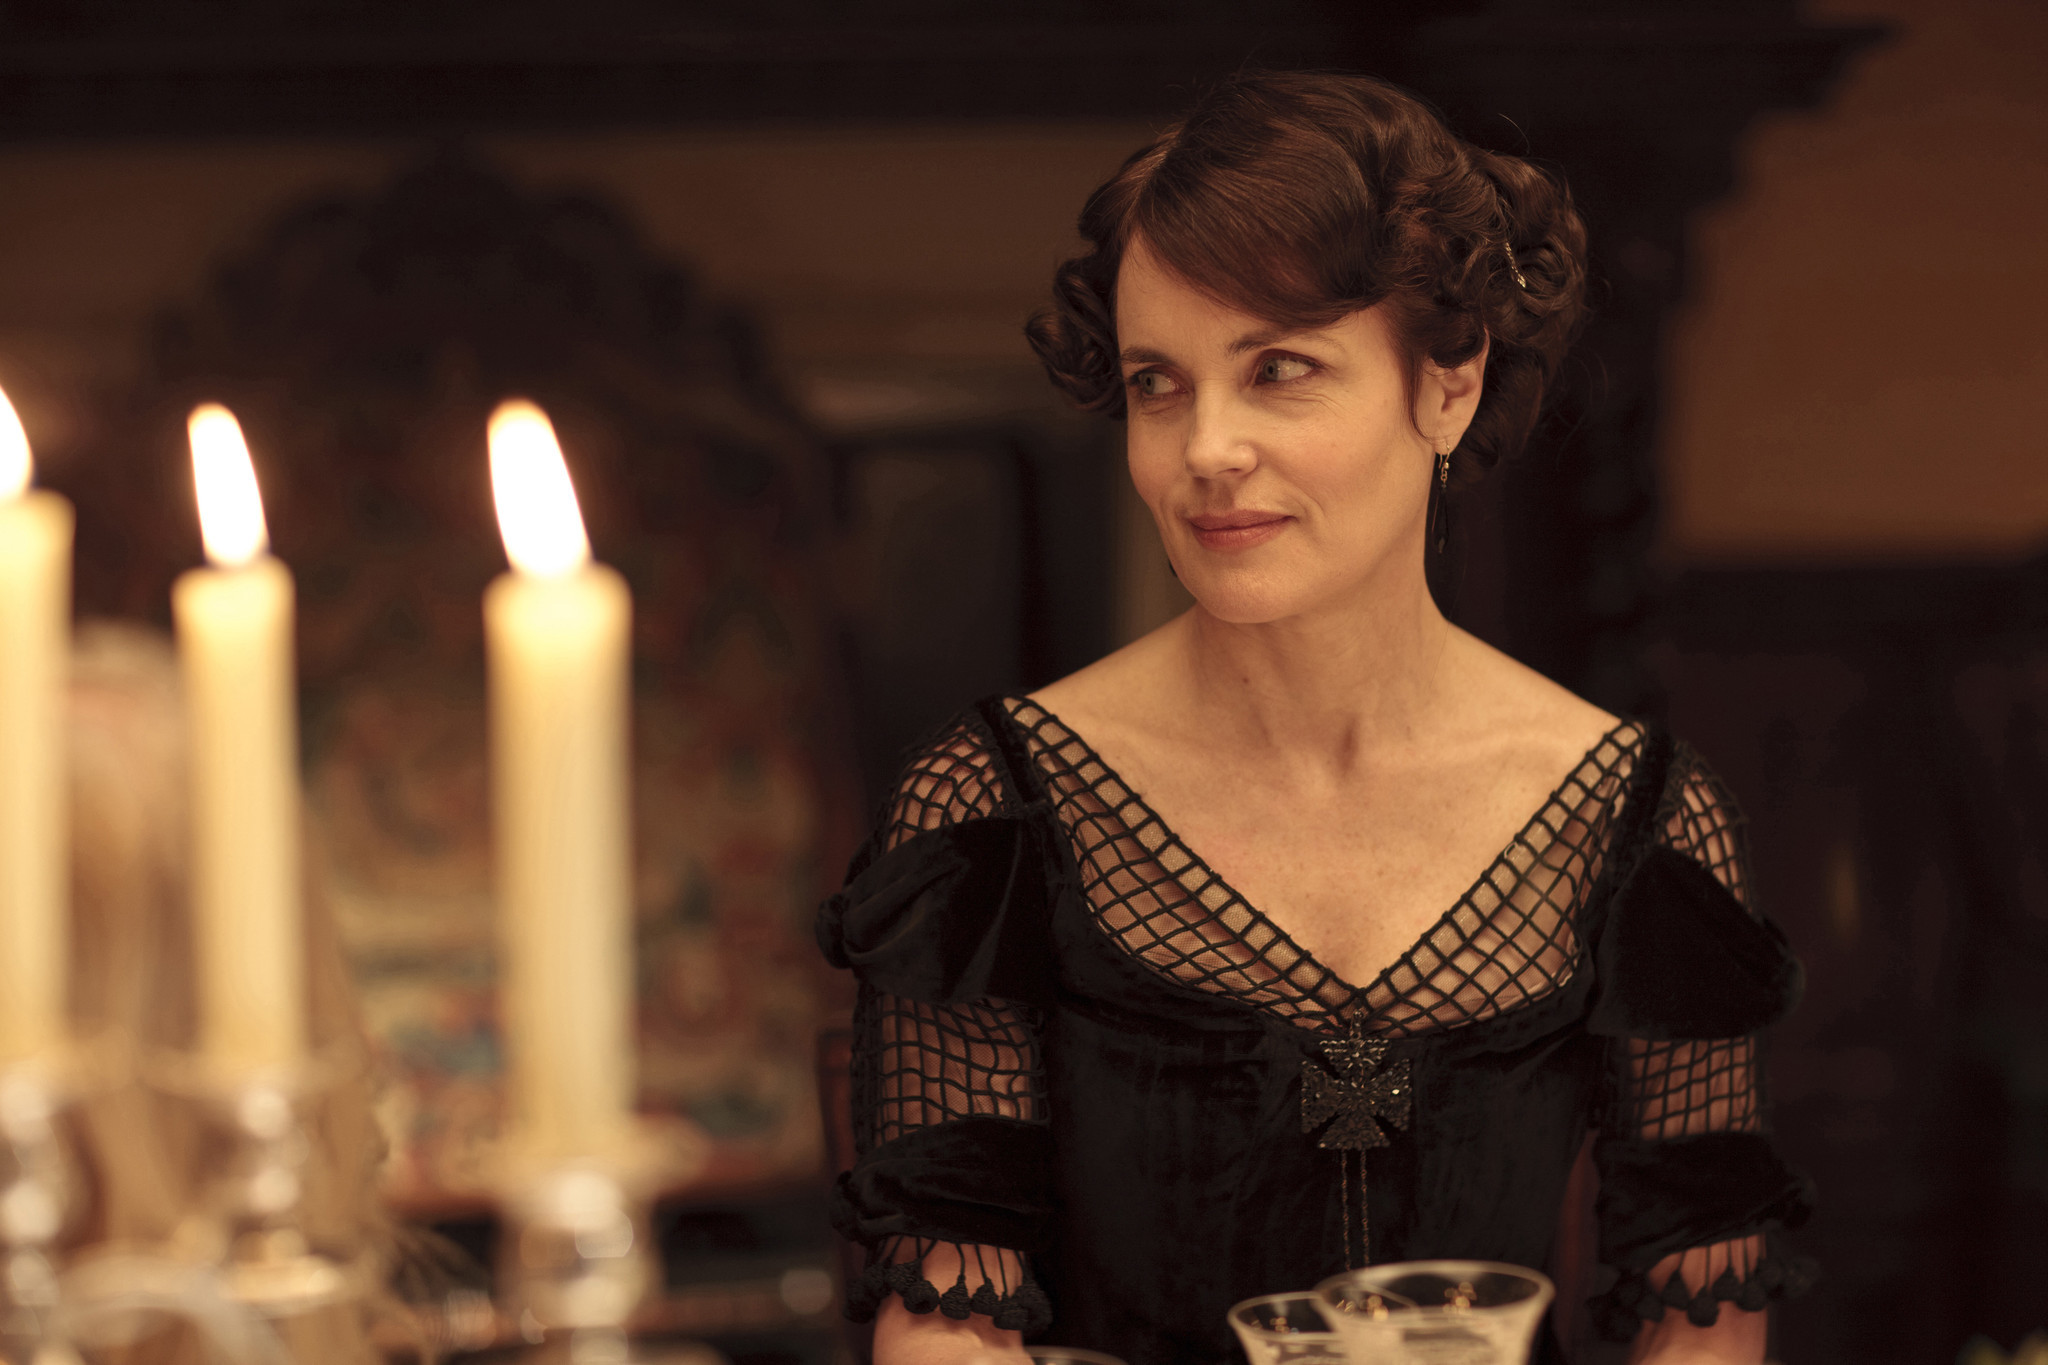 """ELIZABETH McGOVERN, who plays Countess Cora, says of next season: """"I promise you there will be fireworks."""""""